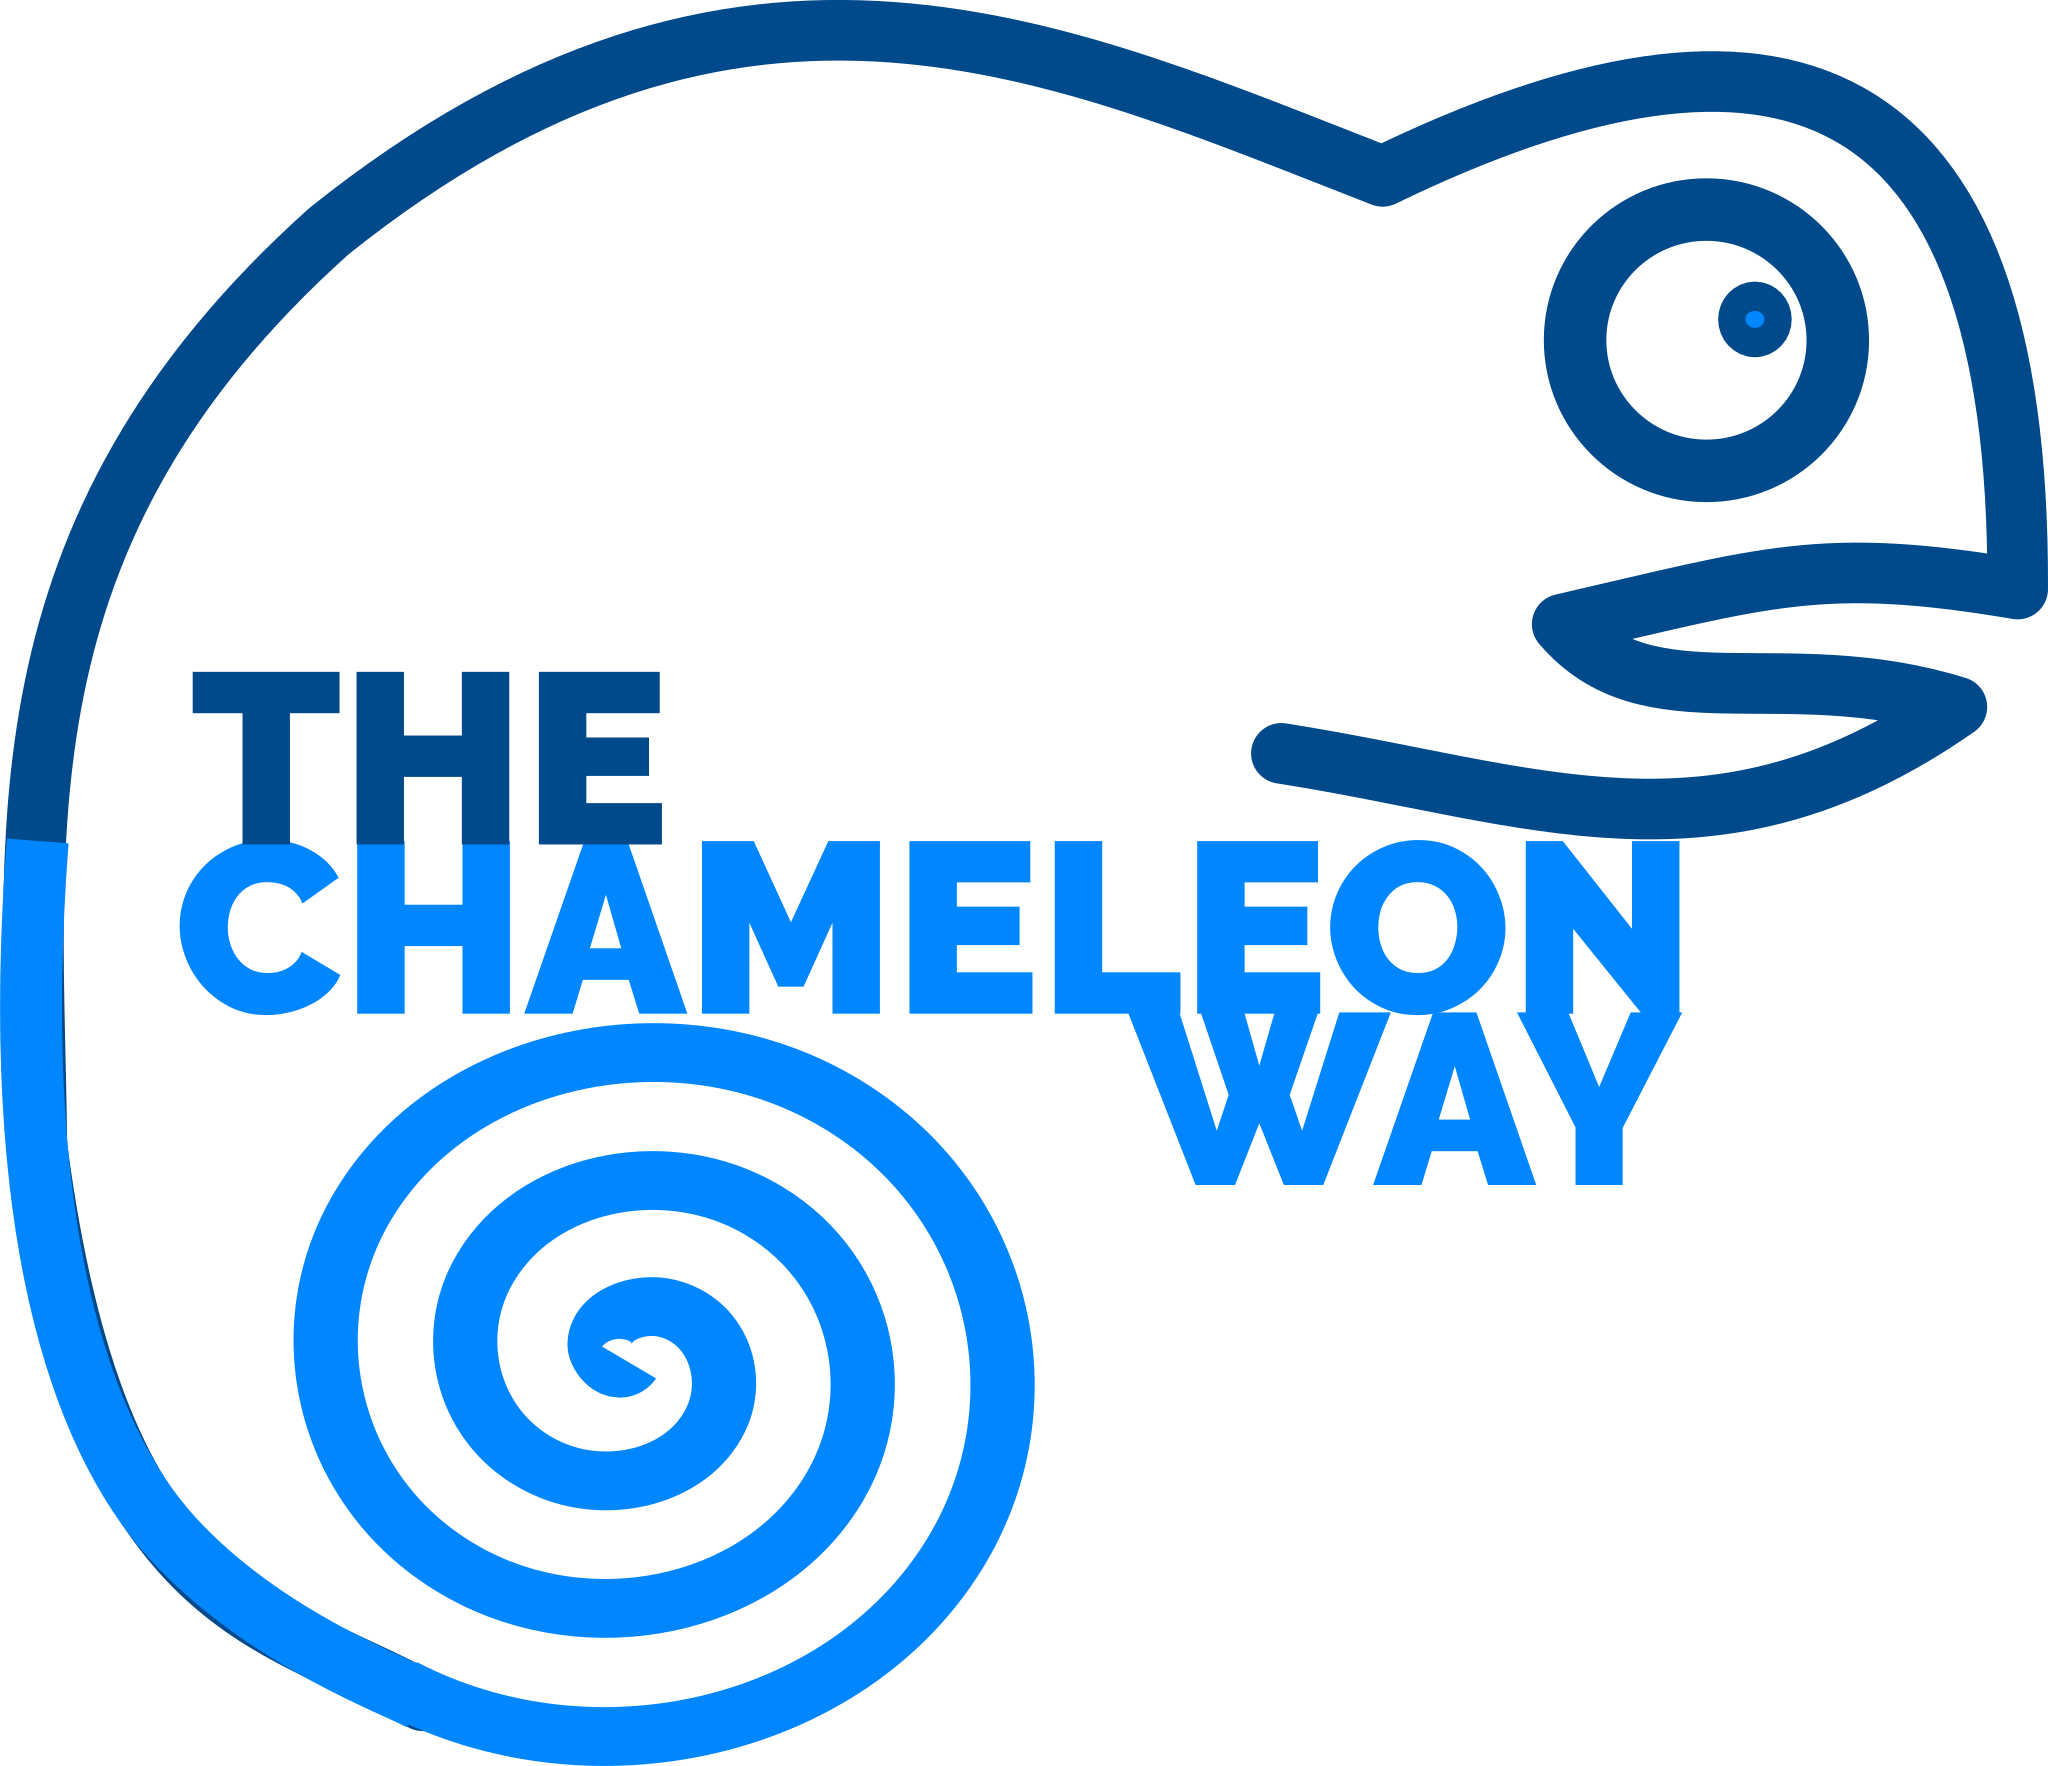 The Chameleon Way